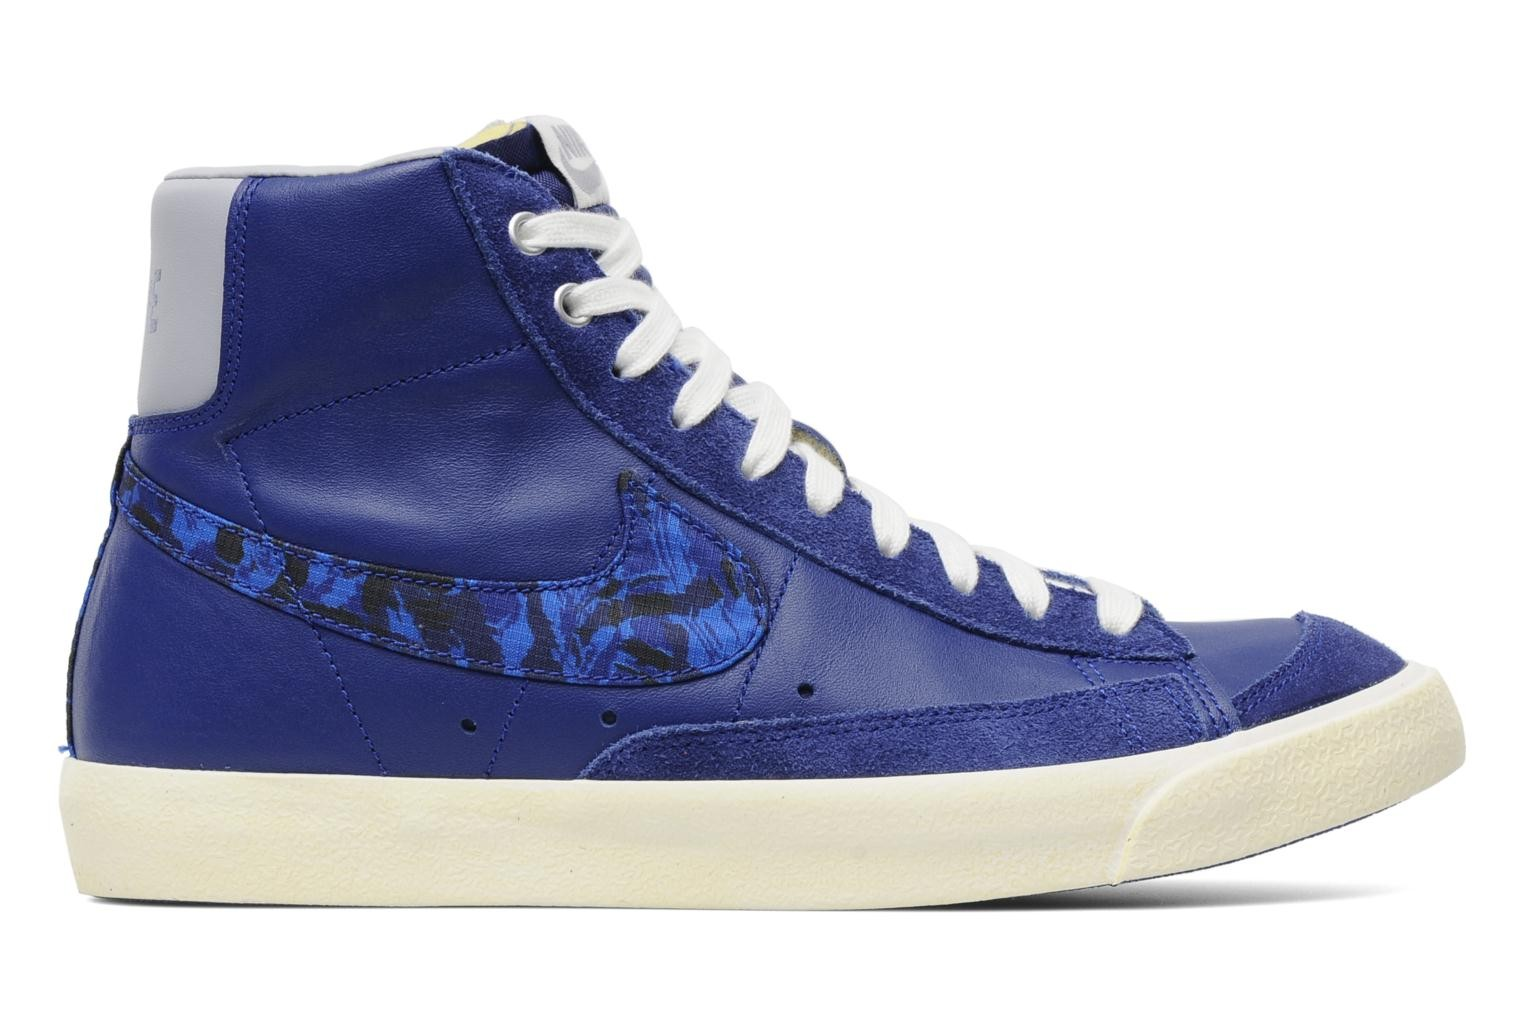 Nike Blazer Mid 77 Prm Vntg Deep Royal Blue Sail Wolf Grey Men's Shoe